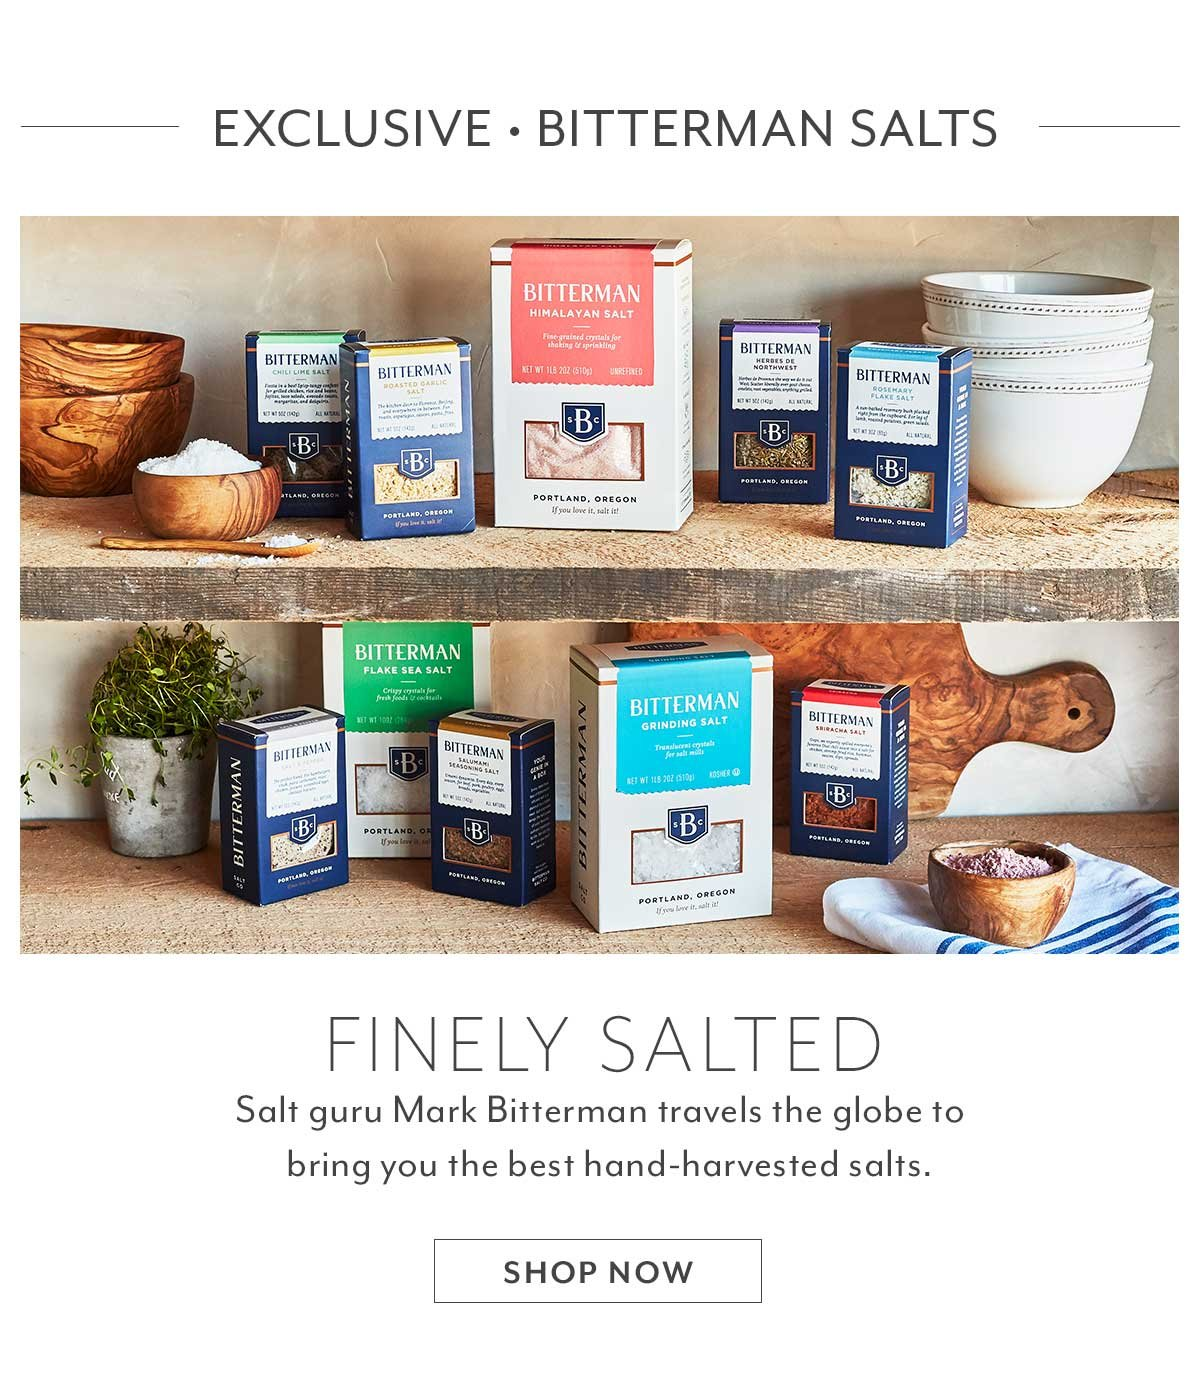 Bitterman Salts